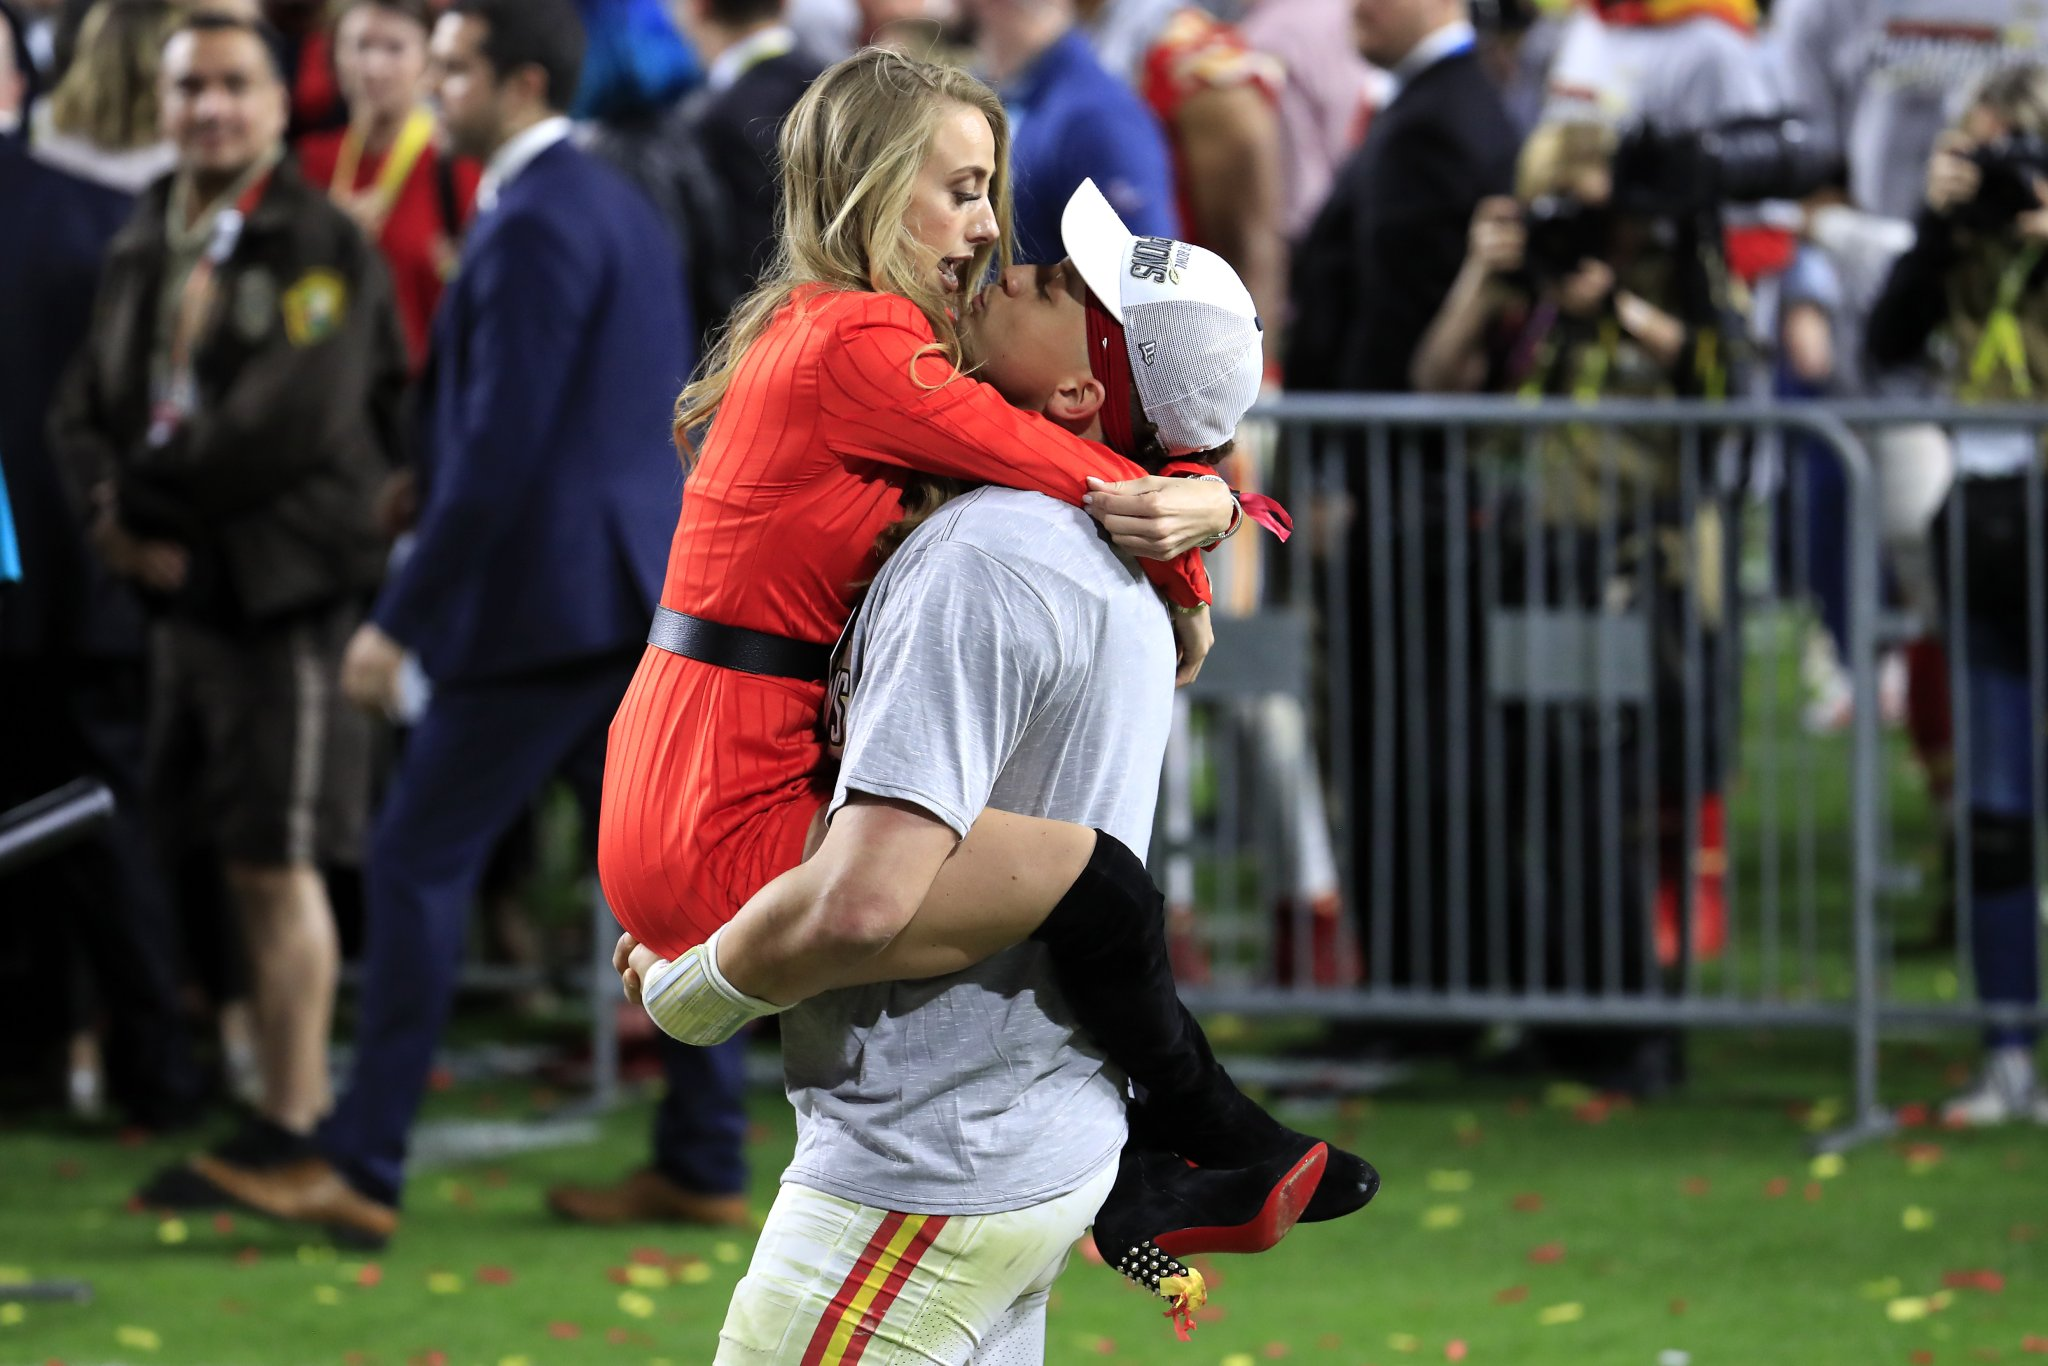 Patrick Mahomes Just Sent Men Back Centuries By Proposing To His GF With A Ring The Size Of A WNBA Ball - BroBible